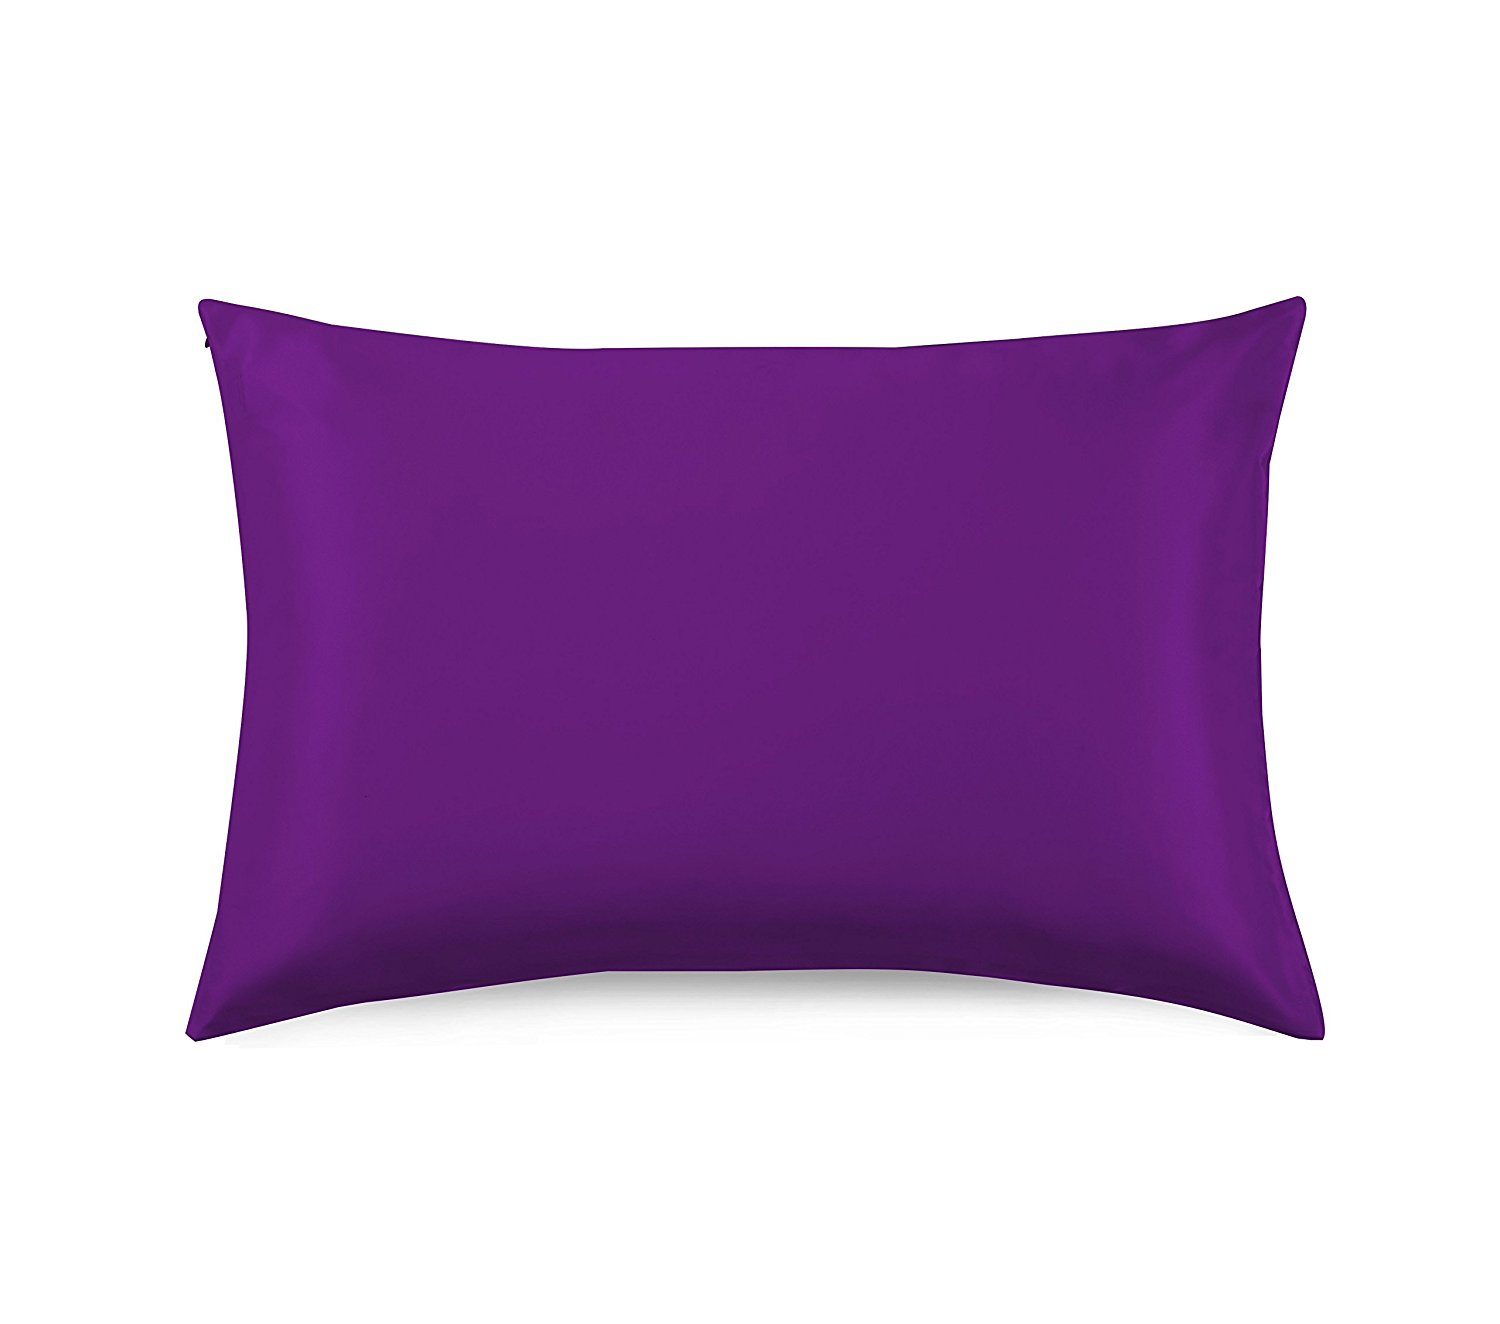 OROSE 19mm Luxury 100% Pure Mulberry Silk Pillowcase with Cotton Underside, good for hair, sleep and facial beauty, prevent wrinkle and allergy, with hidden zipper, gift wrap (King, Violet)